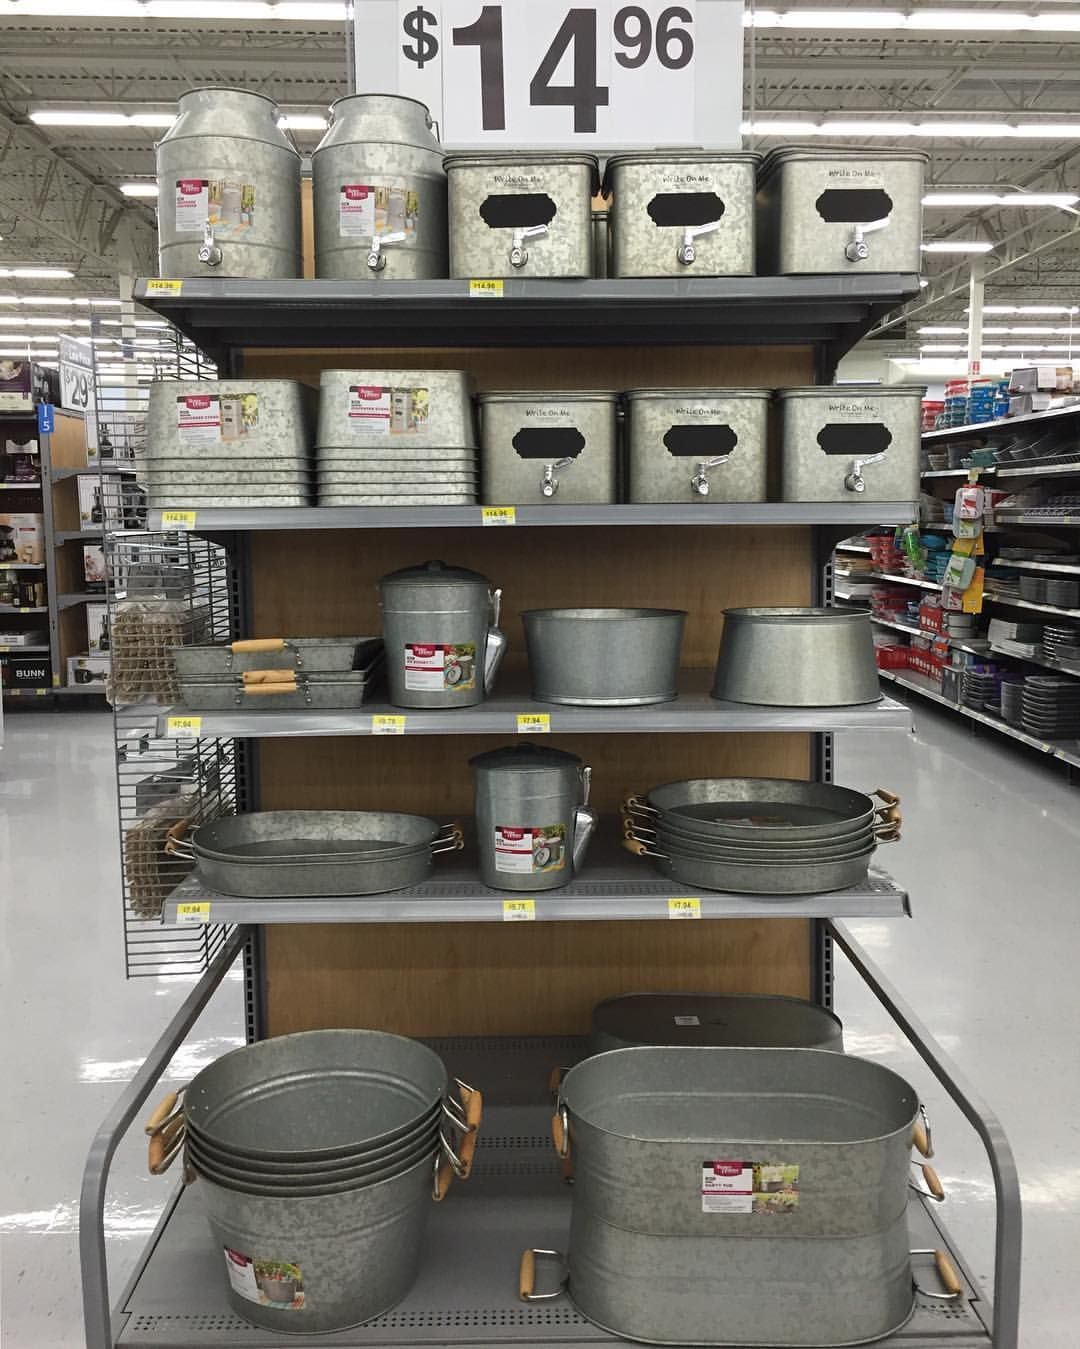 For All Things Galvanized Go To Wal-Mart And Check Out